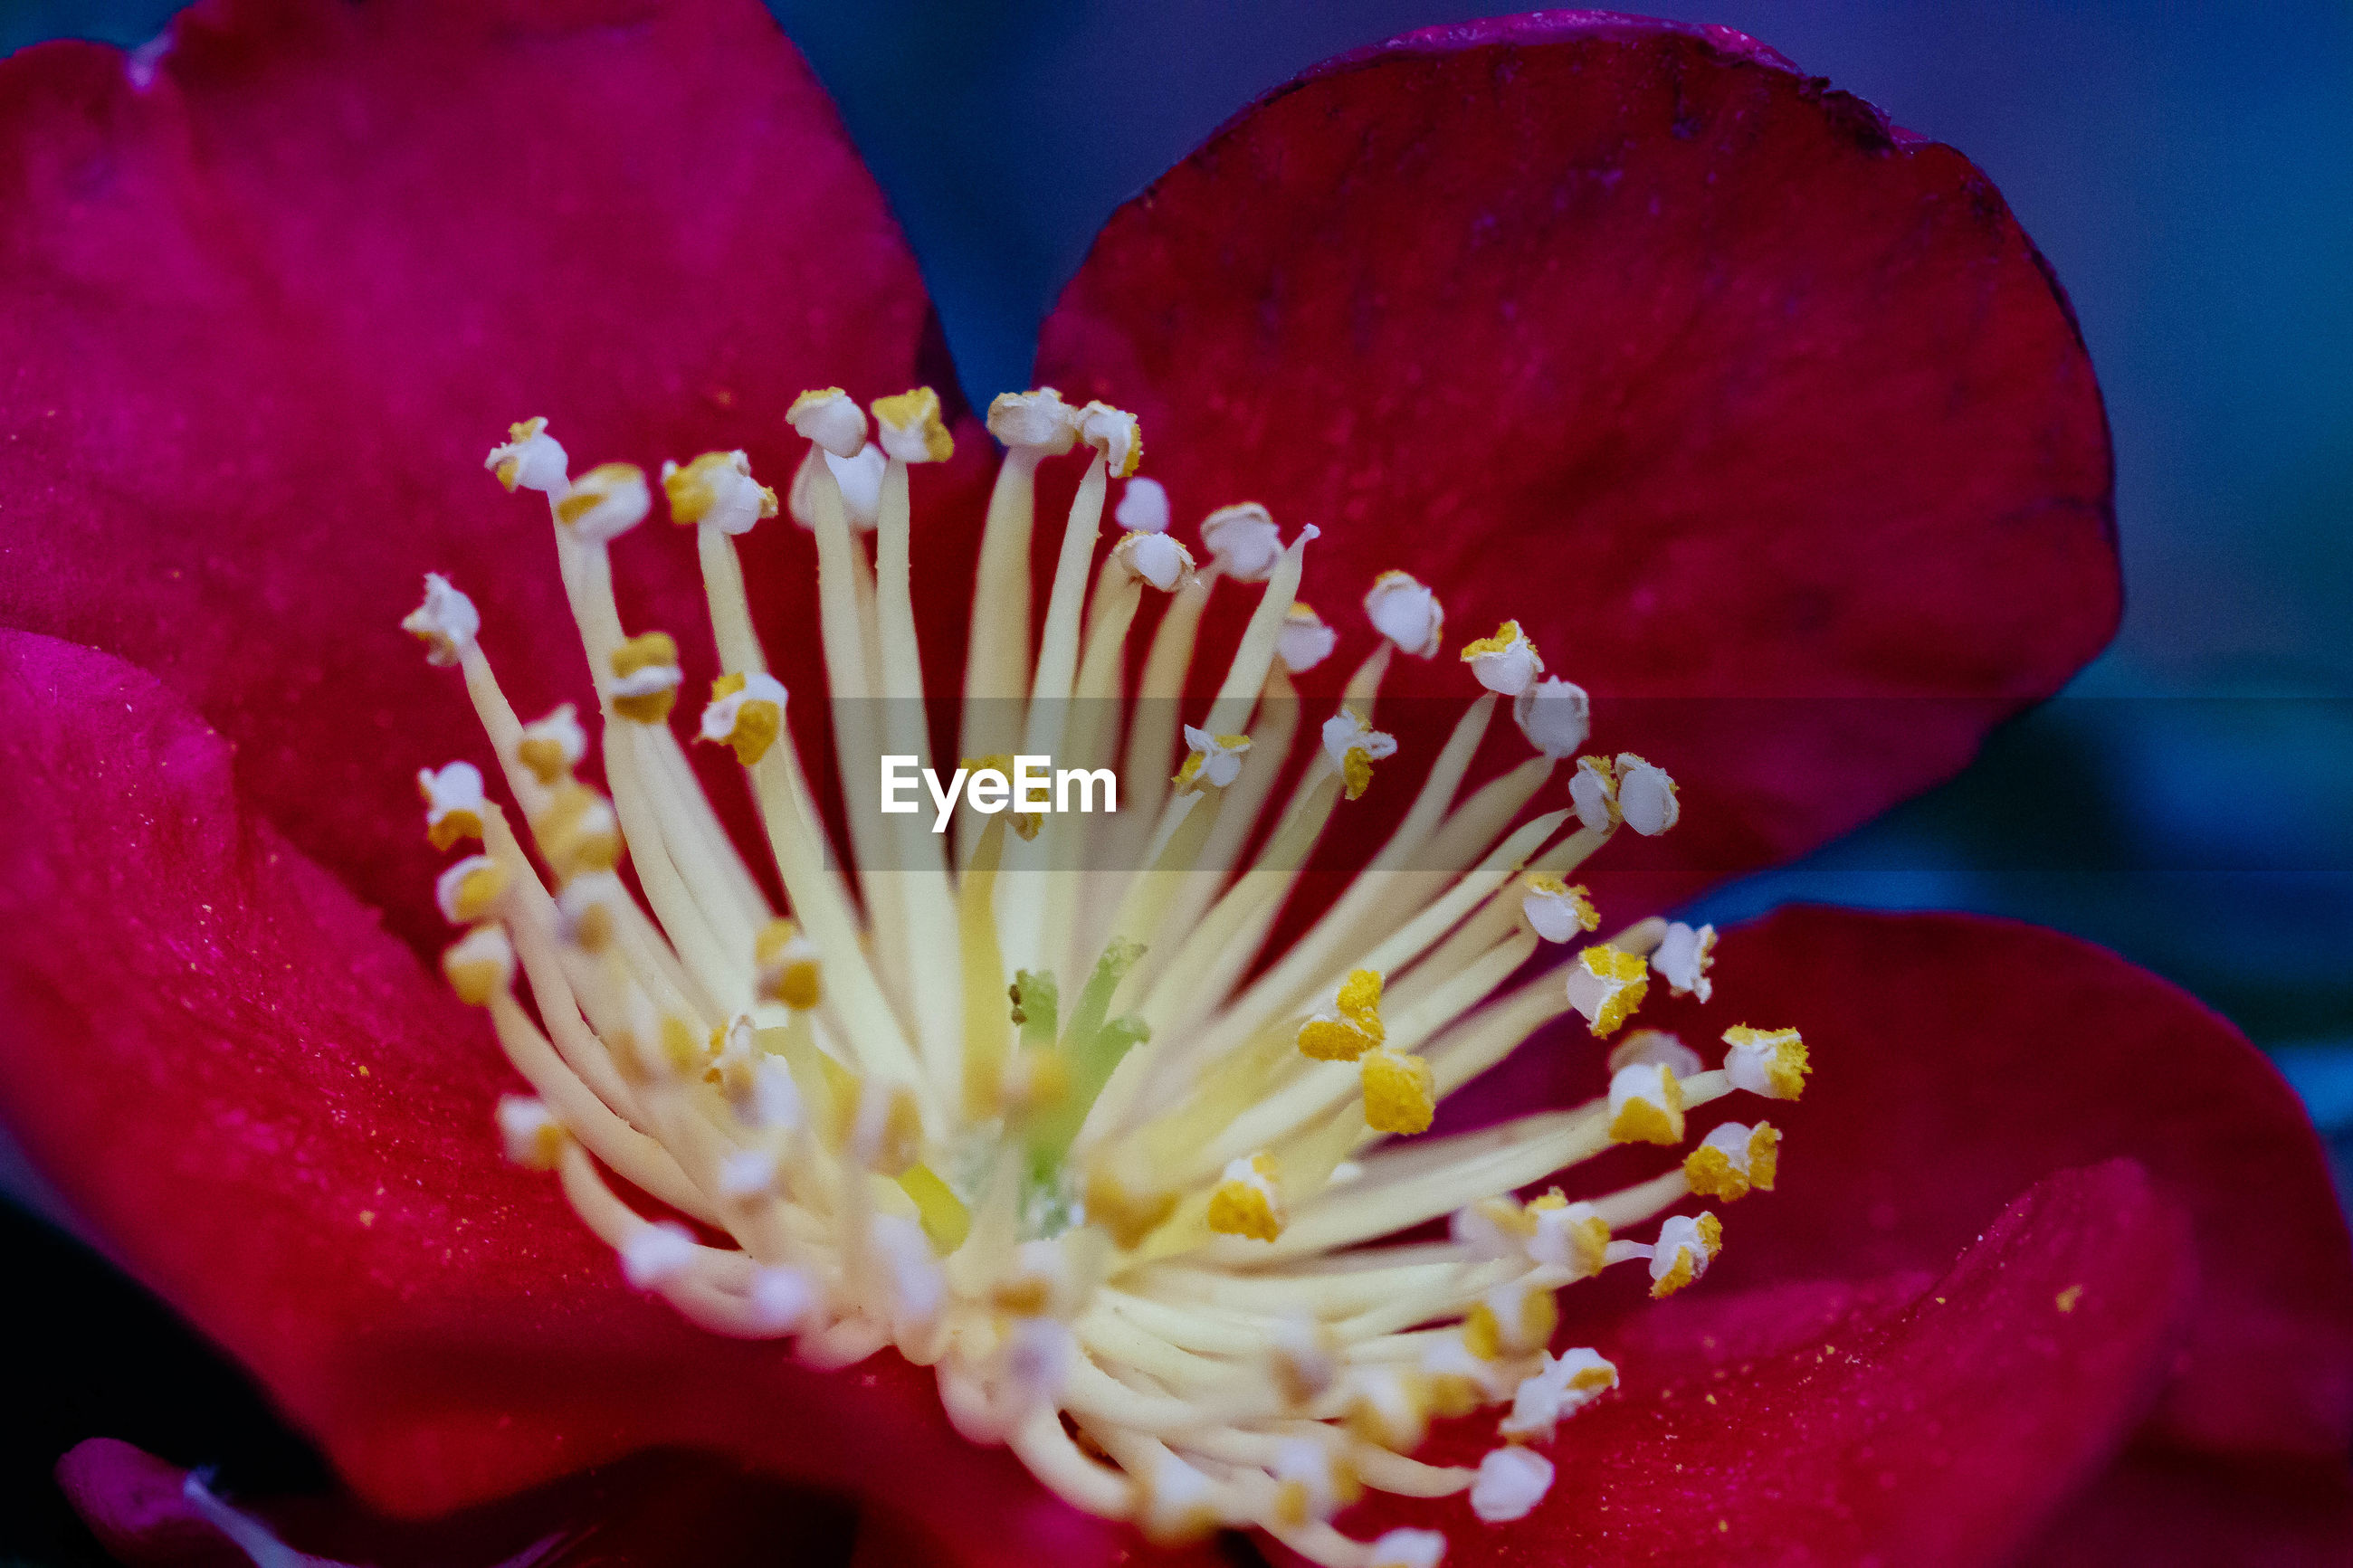 EXTREME CLOSE-UP OF RED FLOWER